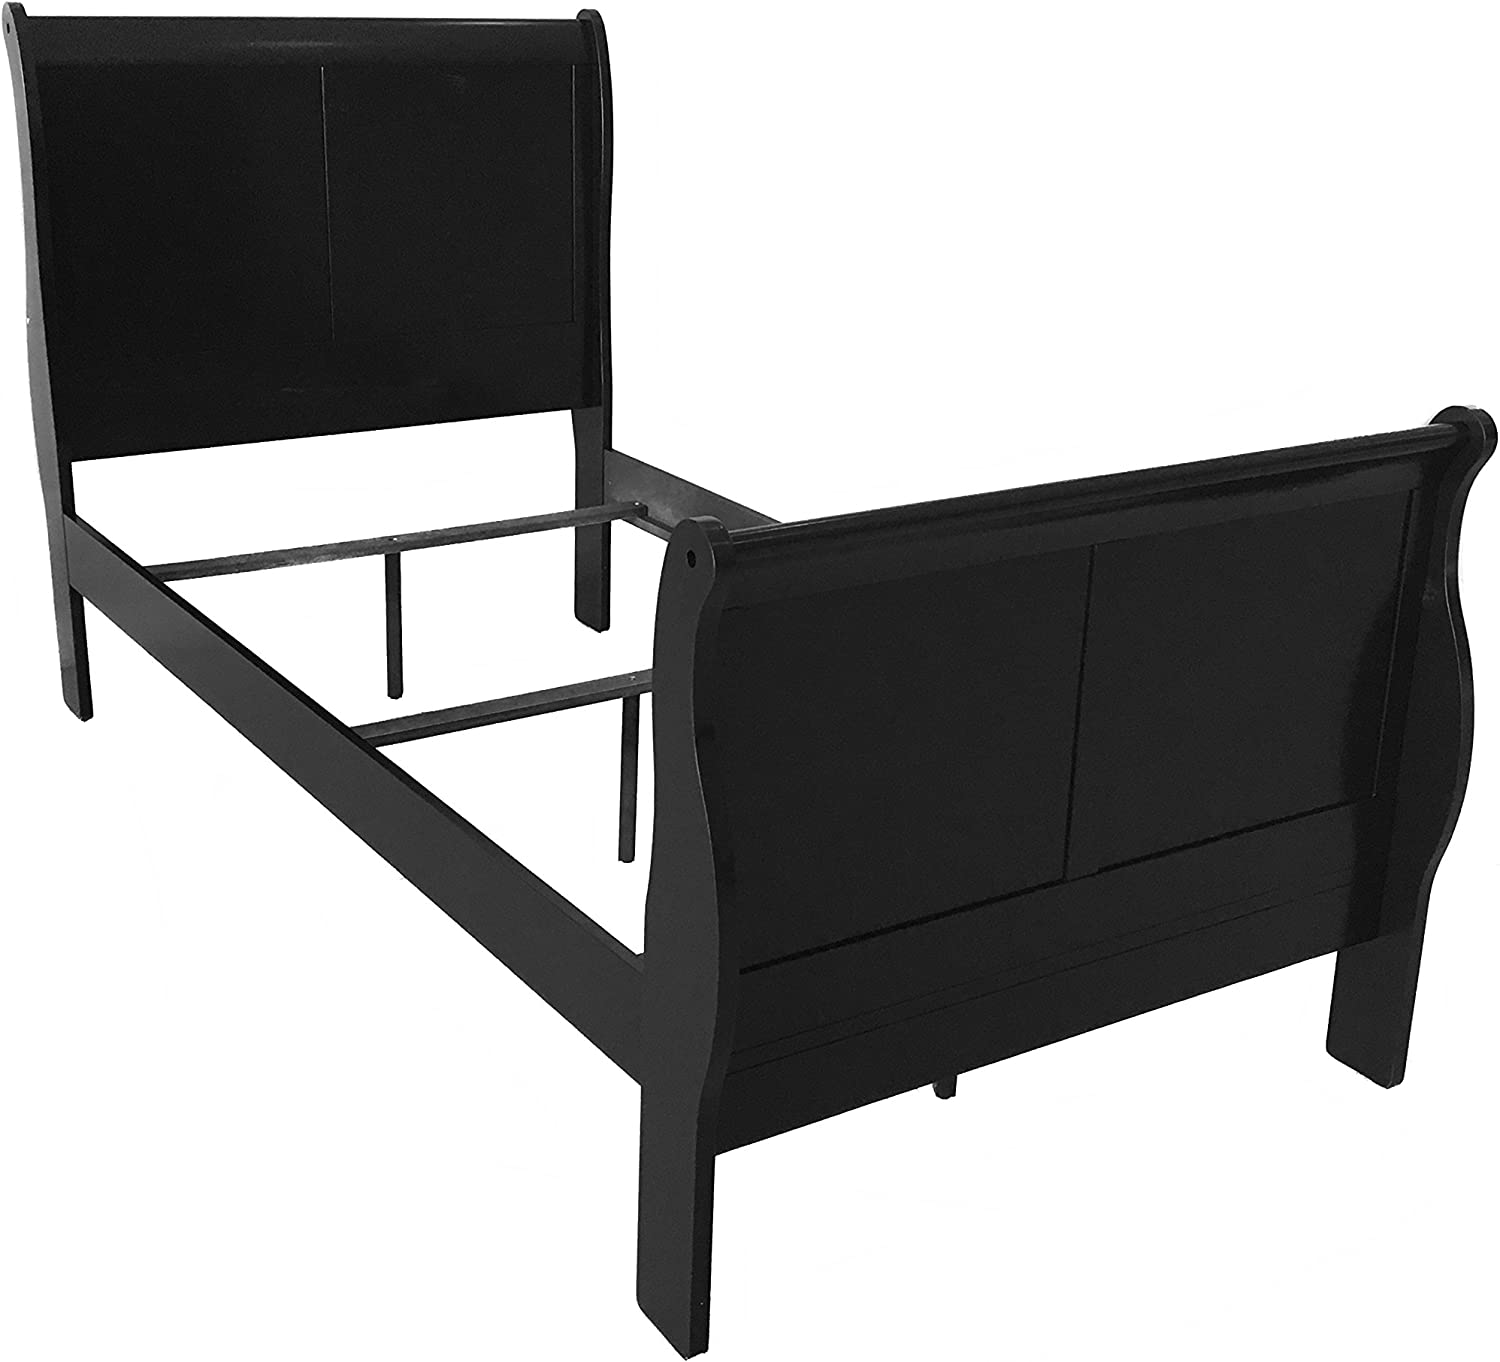 ACME 19510T-SP Louis Philippe III Bed, Twin, Black Finish